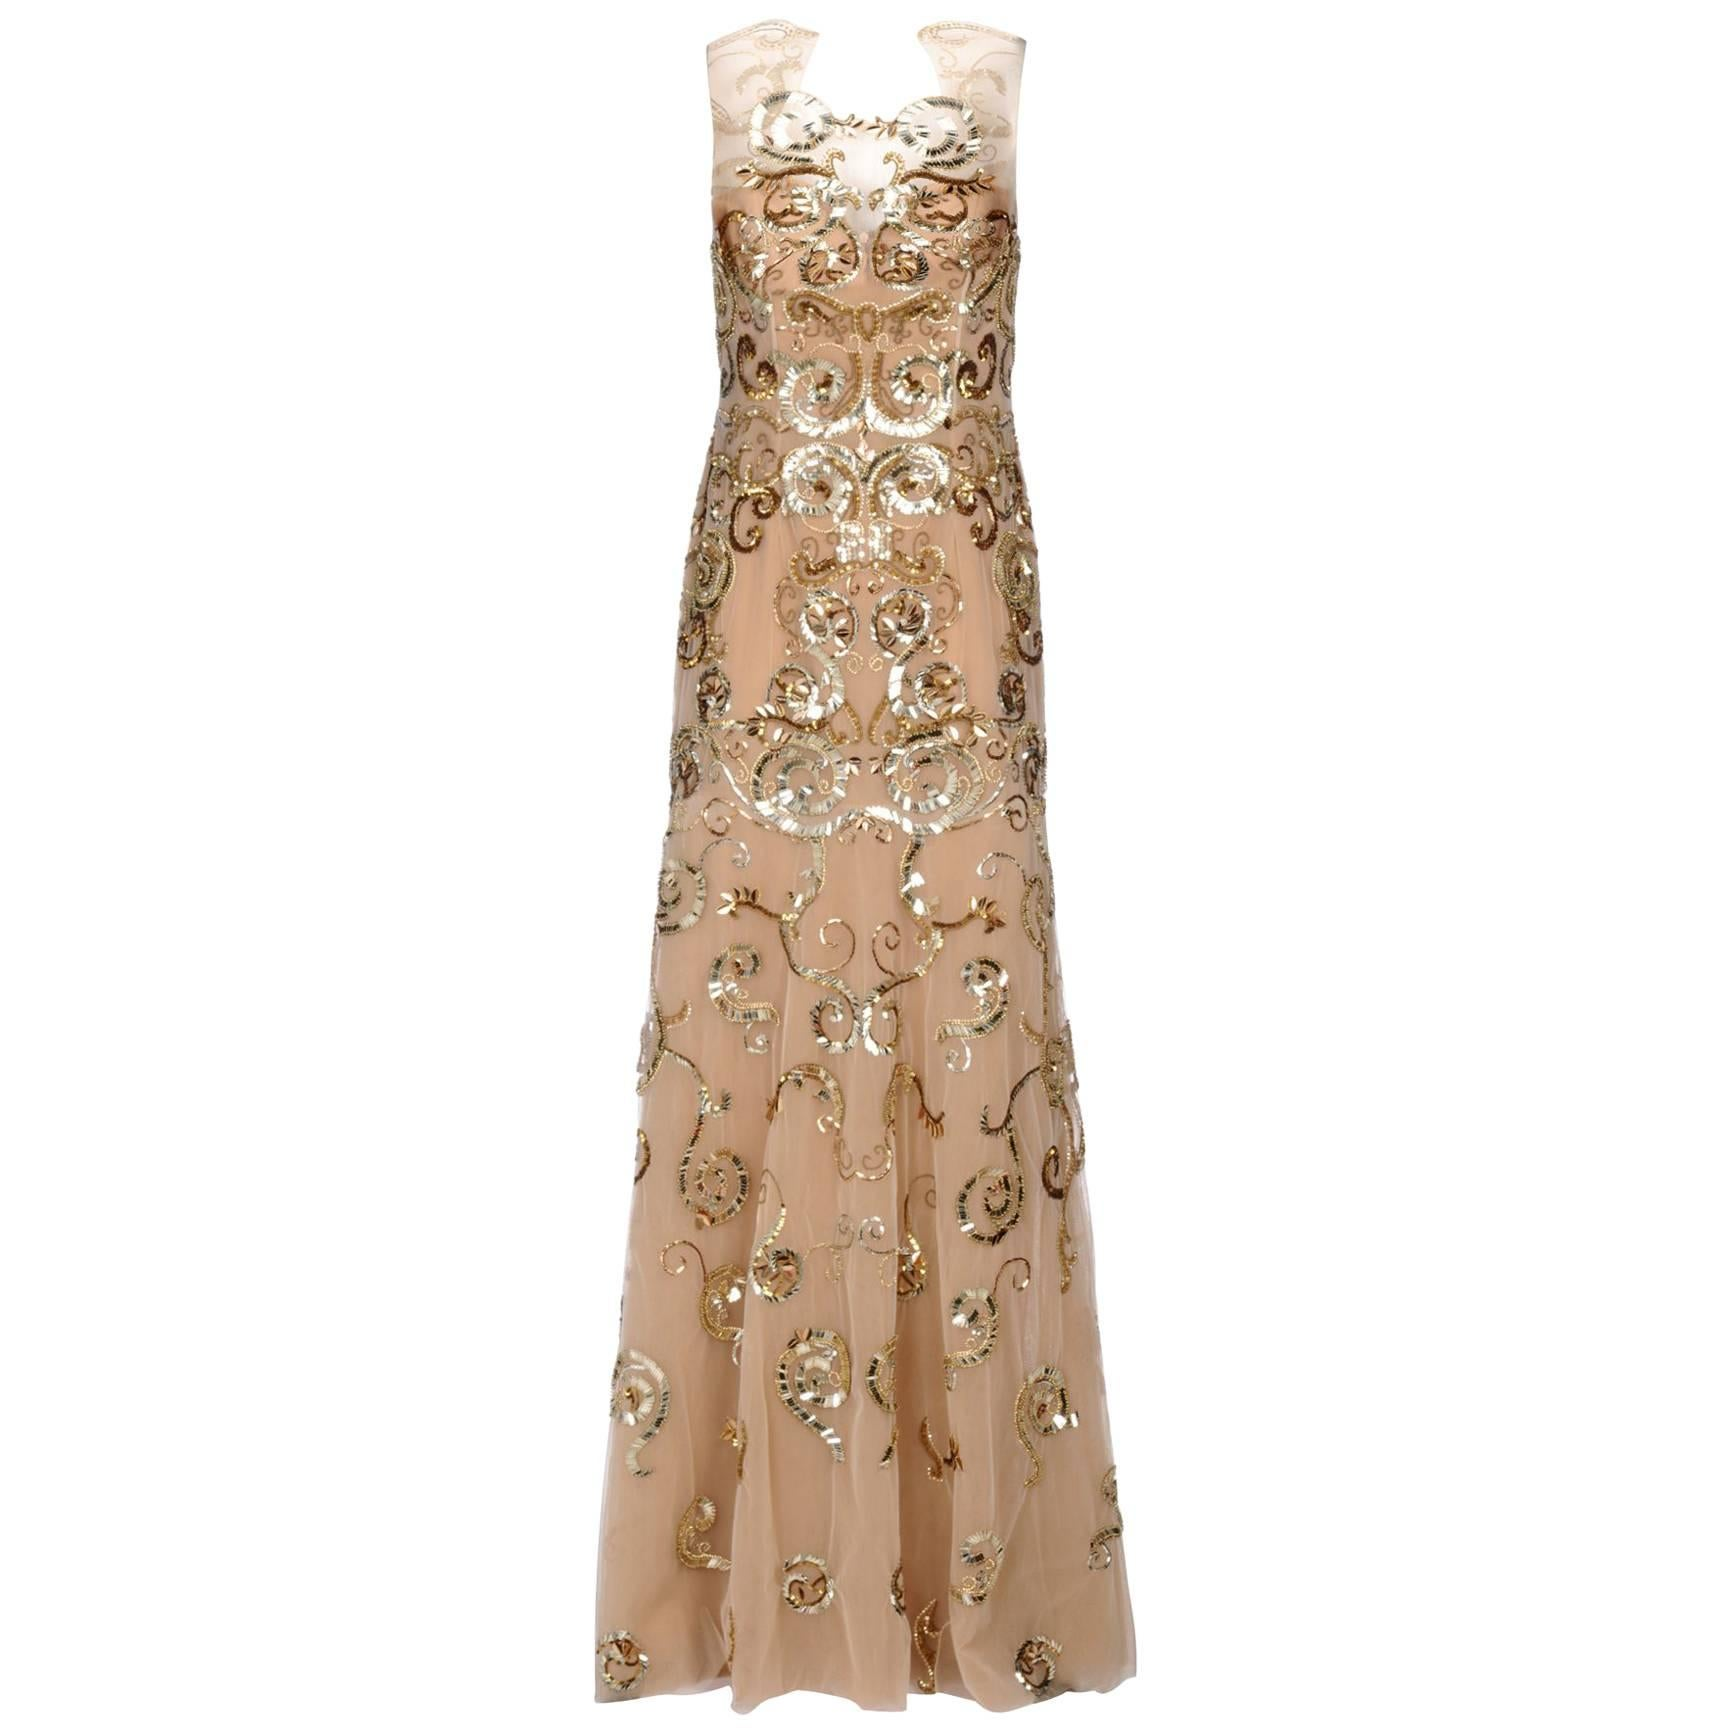 New ZUHAIR MURAD Nude Gold Embellished Dress Gown size 44